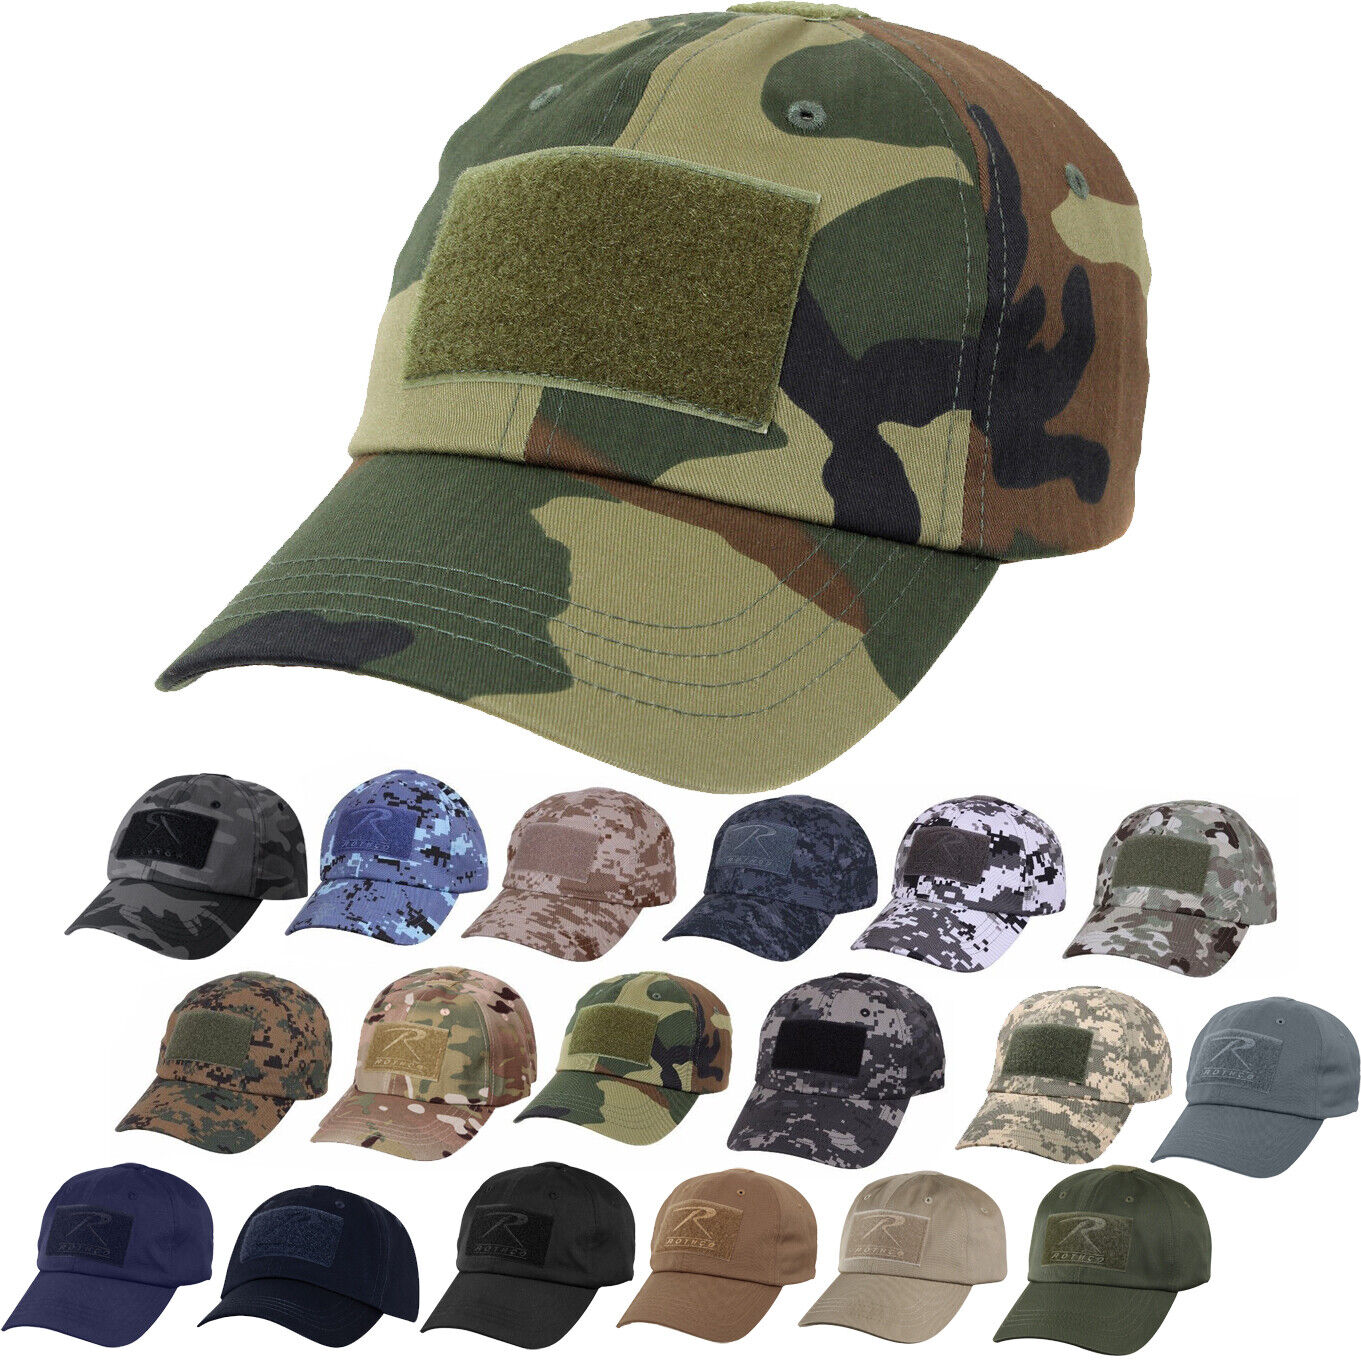 Tactical Operator Cap Adjustable Military Contractor Army Patch Camo Hat Clothing, Shoes & Accessories